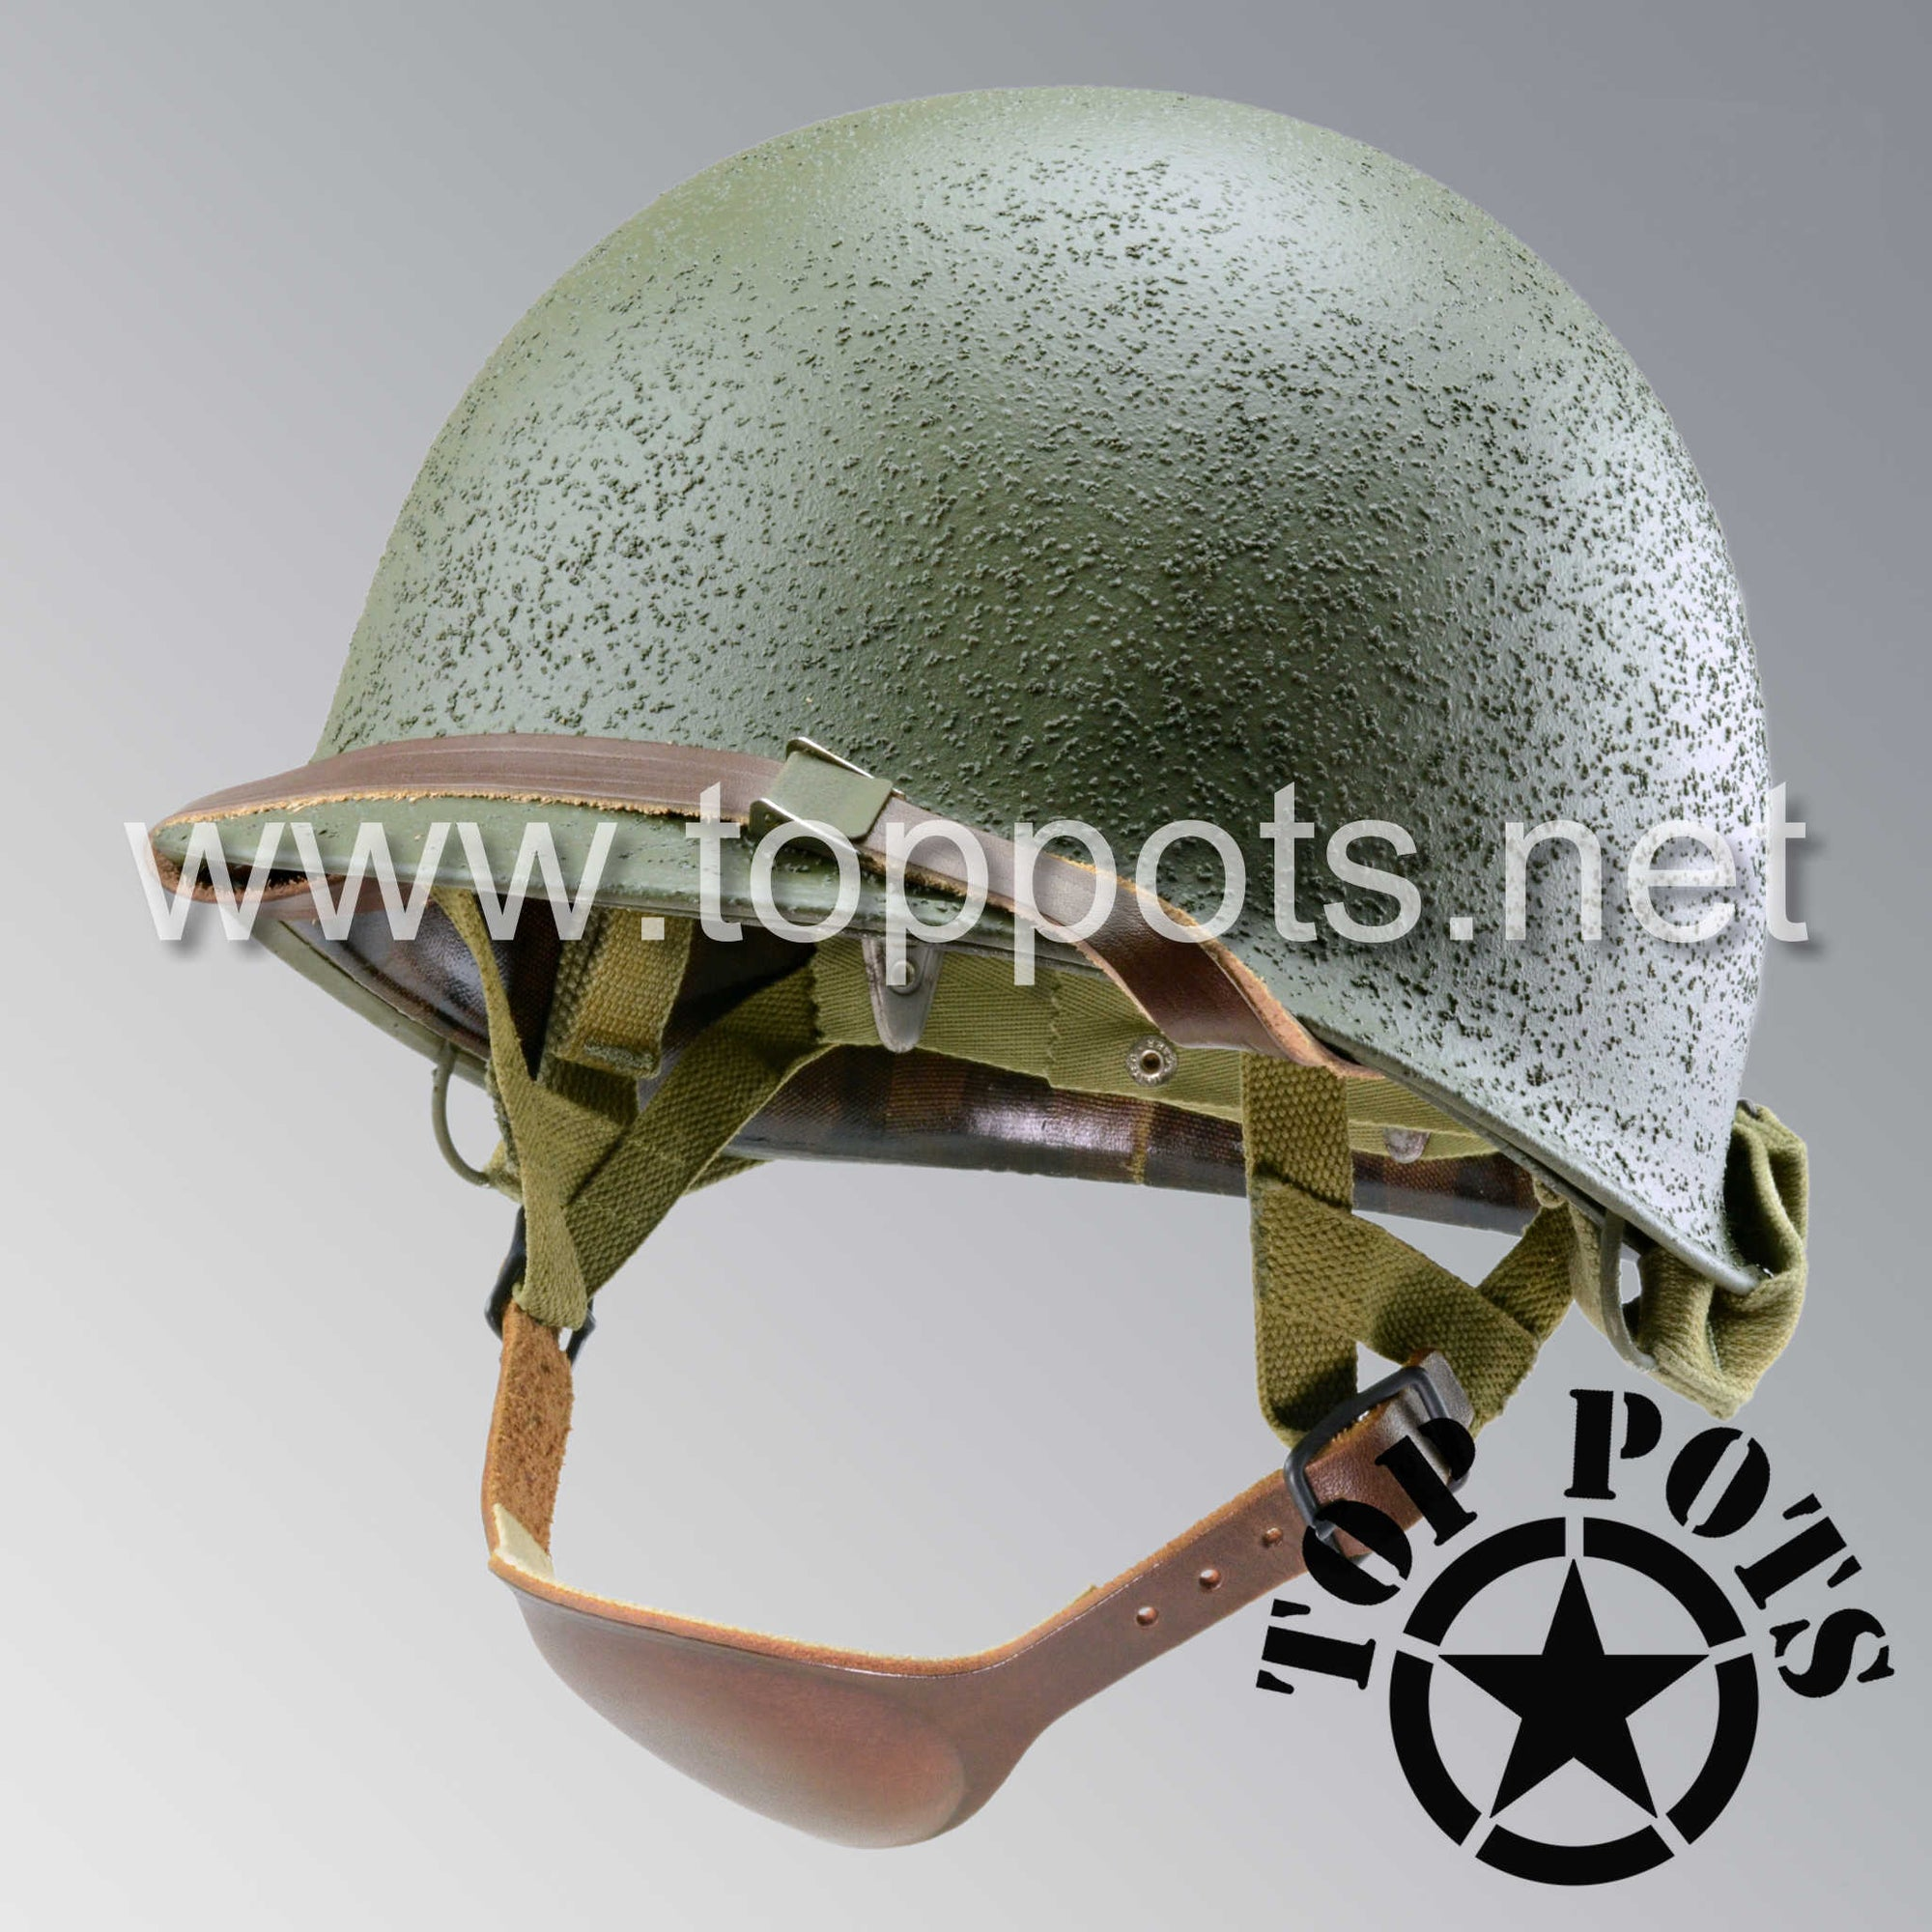 Image 1 of WWII US Army Restored Original M2 Paratrooper Airborne Helmet D Bale Shell and Liner with Inland A Straps